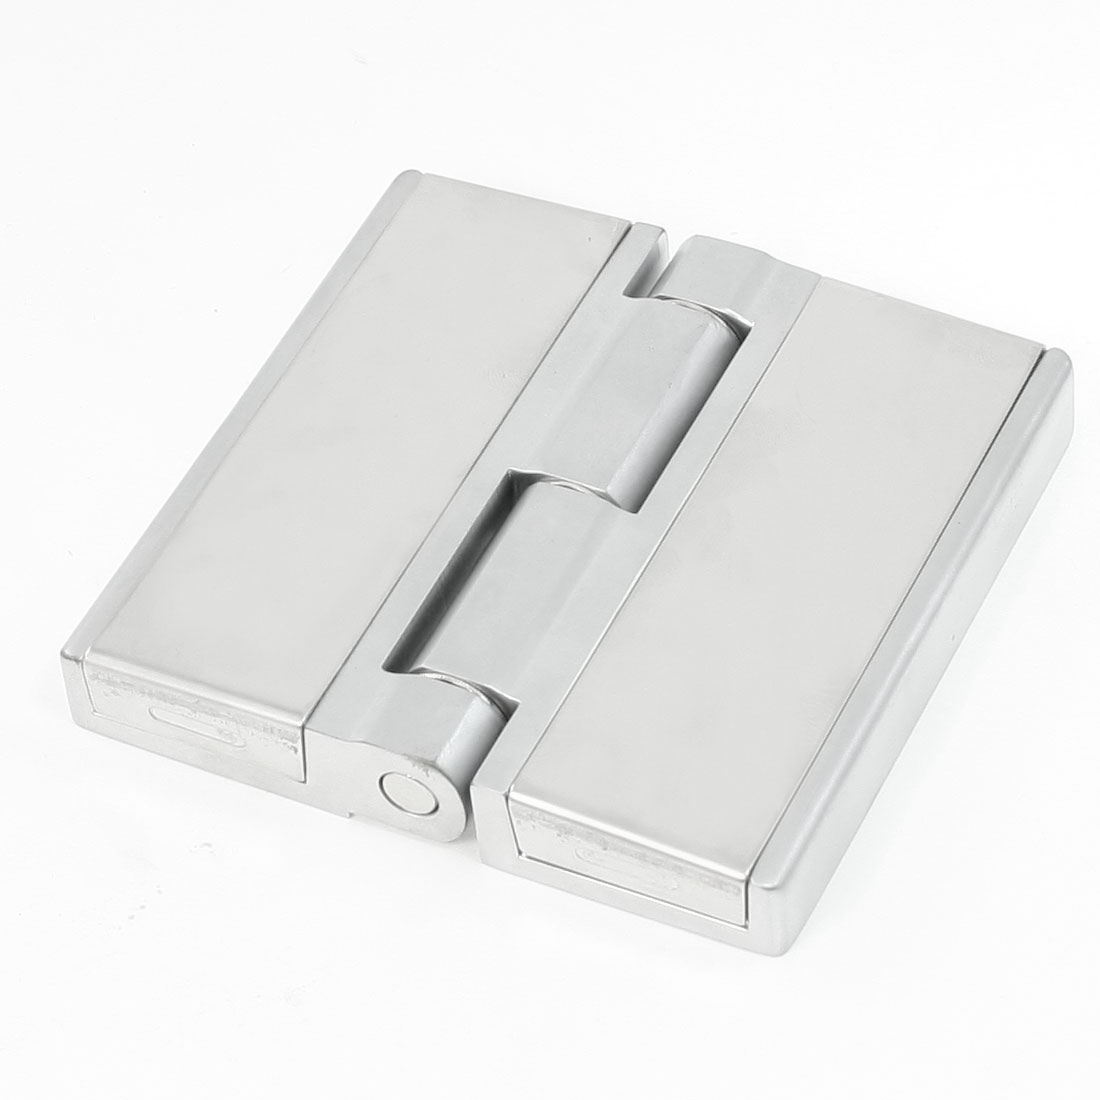 10cmx10cm Silver Tone Stainless Steel Cabinet Window Door Hinge